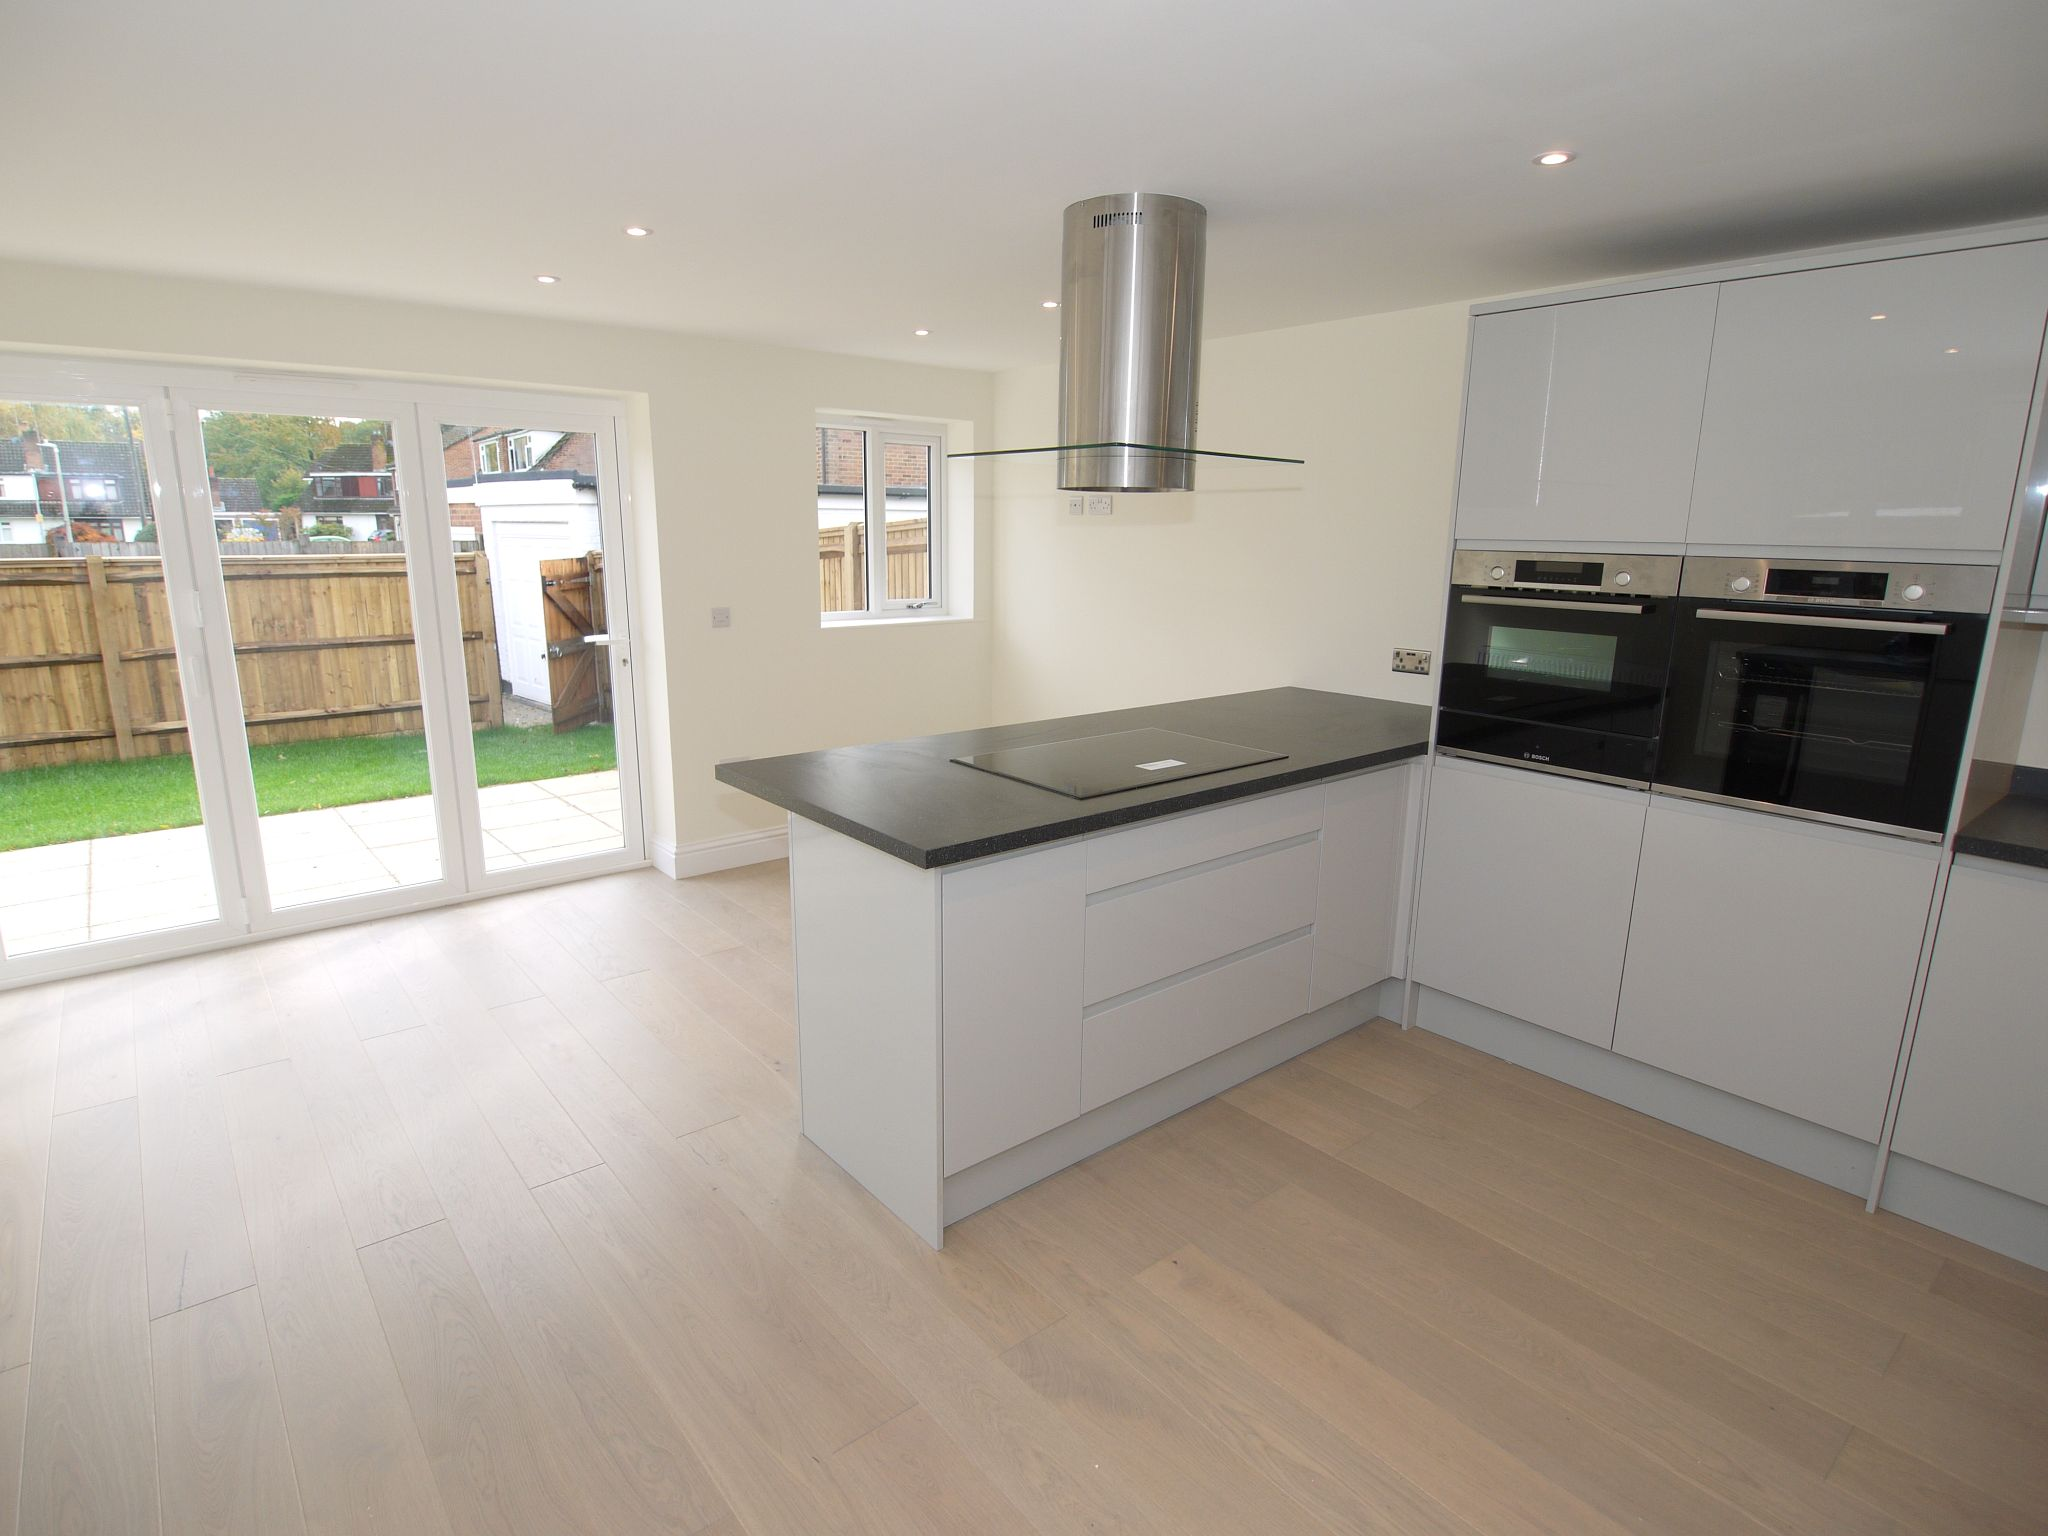 2 bedroom detached house Sale Agreed in Sevenoaks - Photograph 2